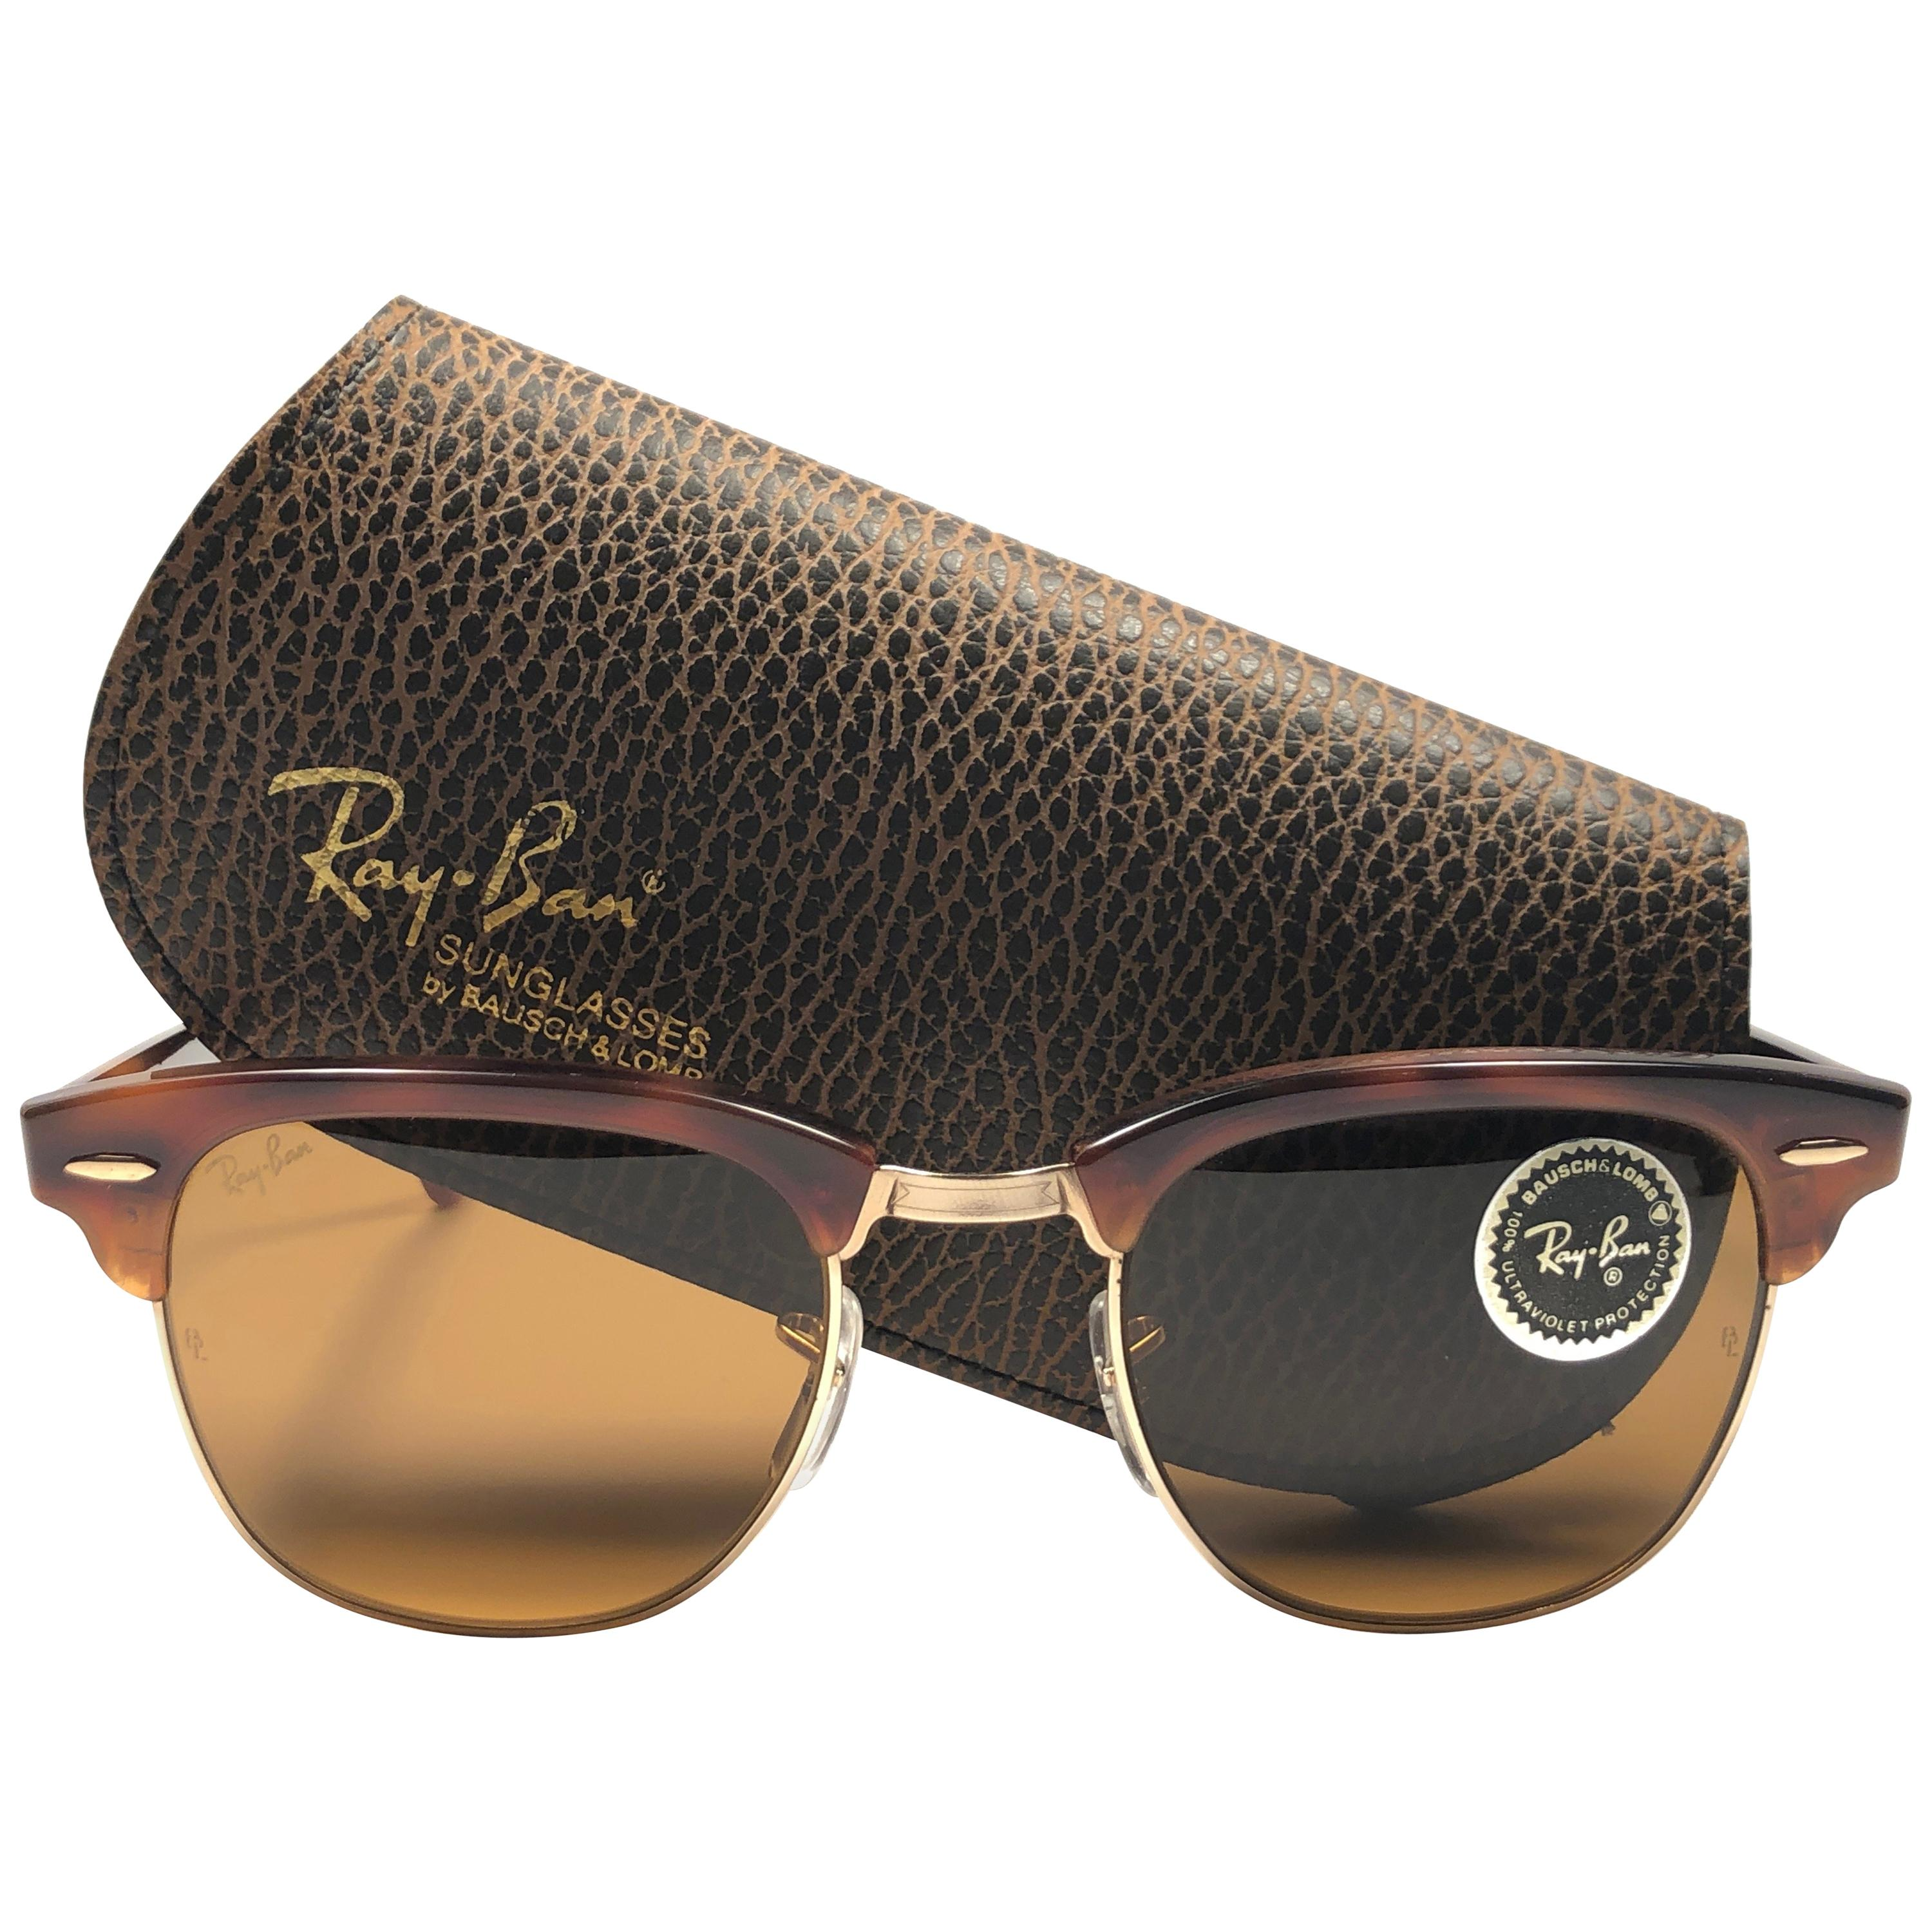 6730be510c43 Ray Ban Brown Sunglasses - 57 For Sale on 1stdibs